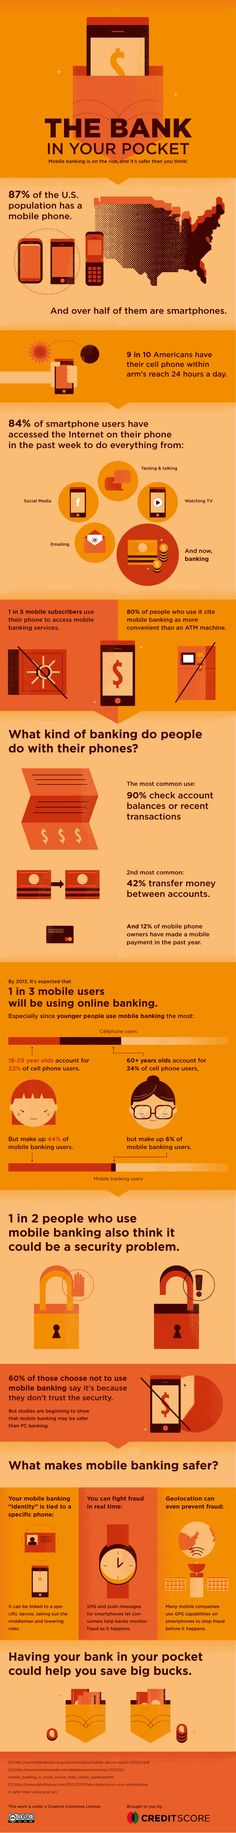 Fresh on IGM > Mobile Banking Adoption: Mobile Banking is on the rise and its safer than you think. Having your bank in your pocket can help you save big bucks. Learn about the latest trends in the US.  > http://infographicsmania.com/mobile-banking-adoption/